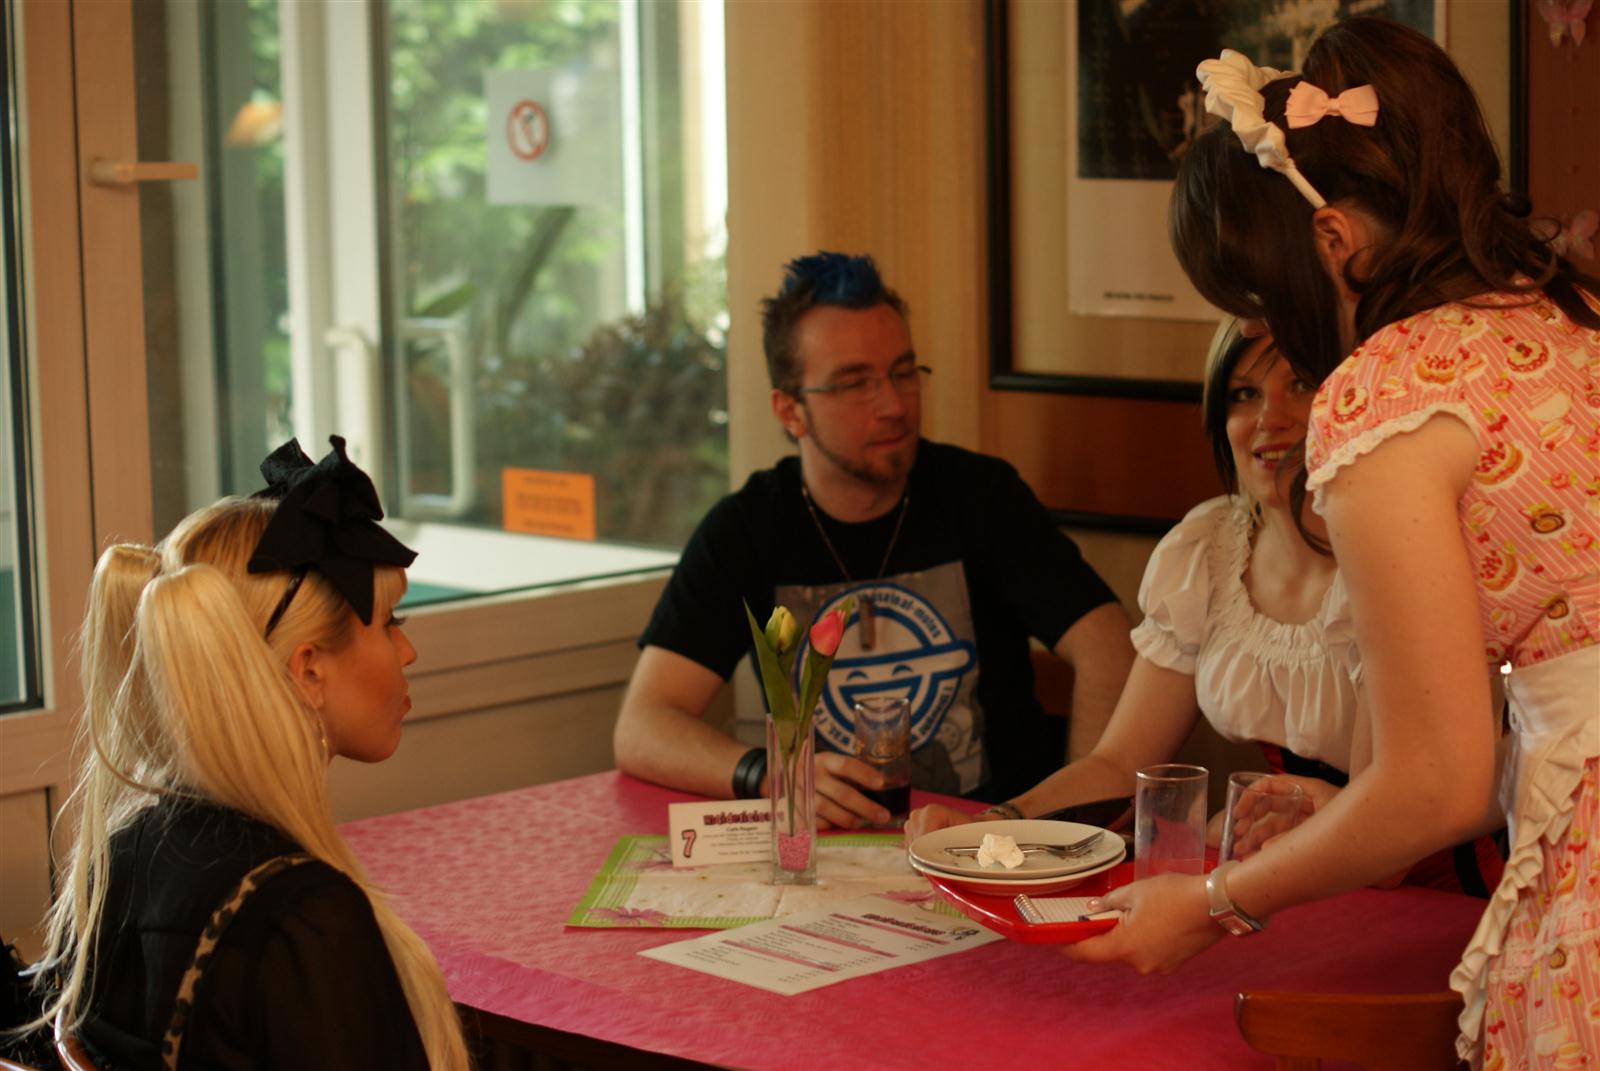 Maidcafe (ChristianR)